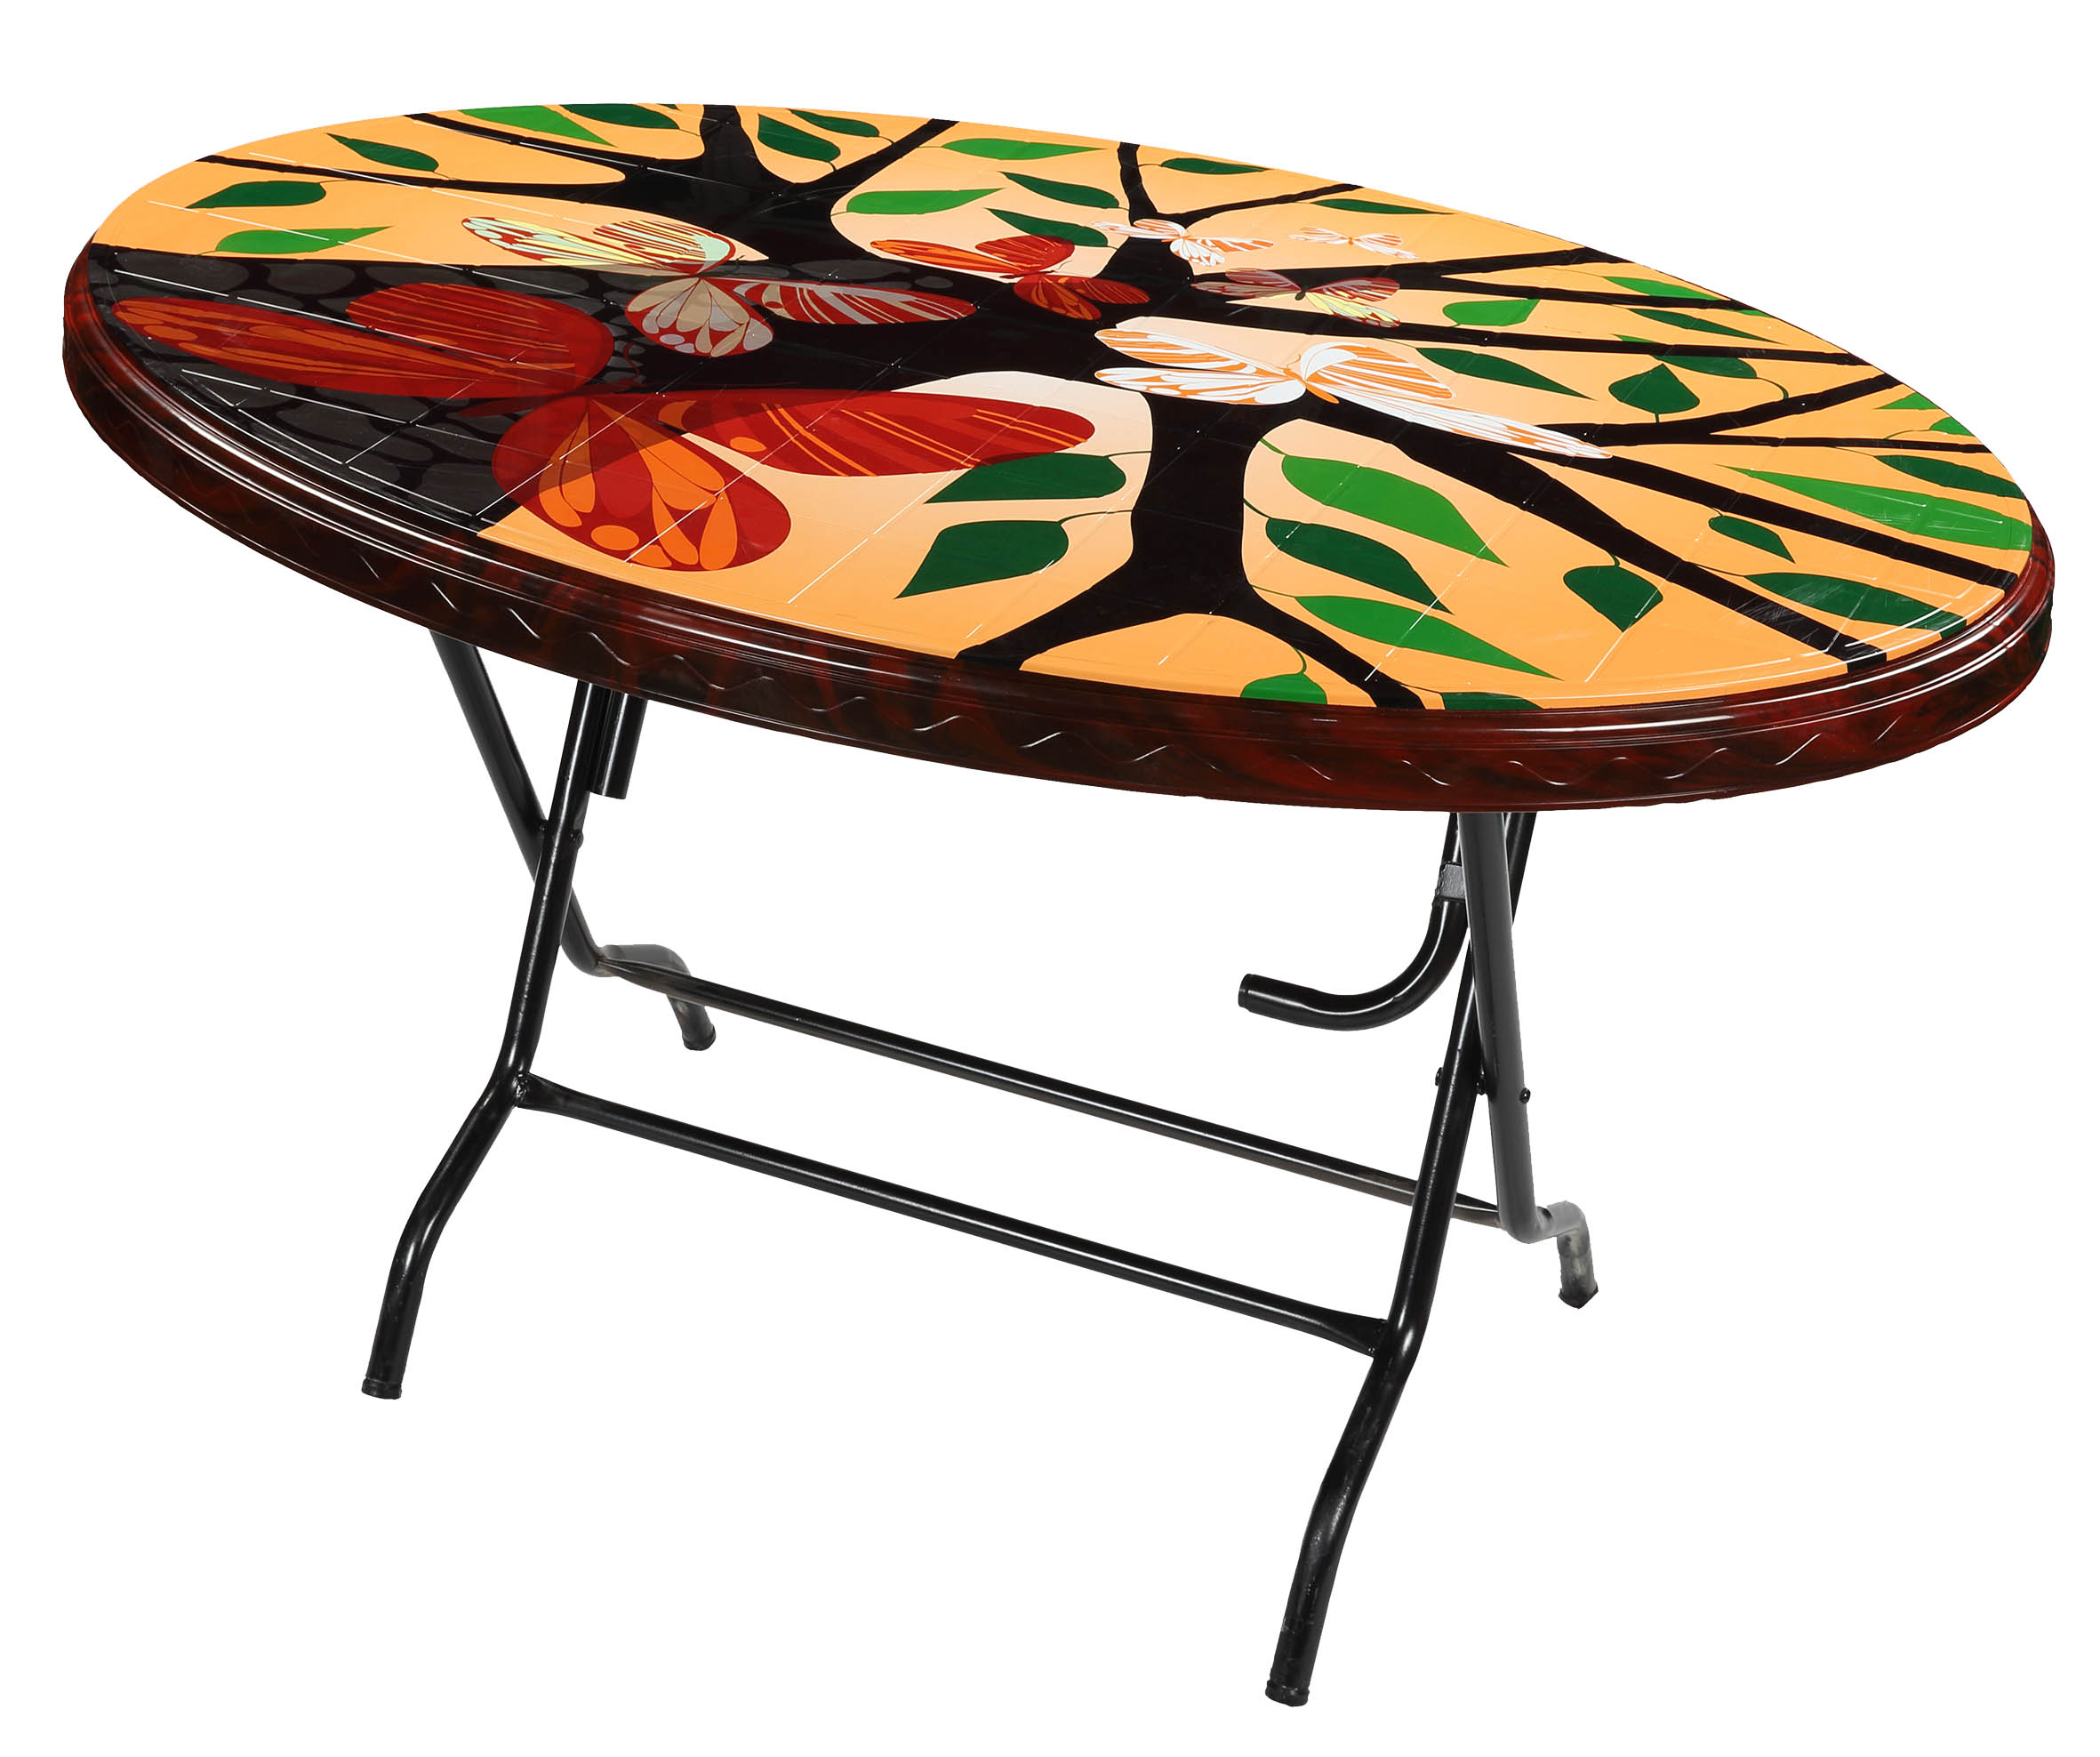 Dining Table 4 Seat Oval S/L Print Love Tree-RW